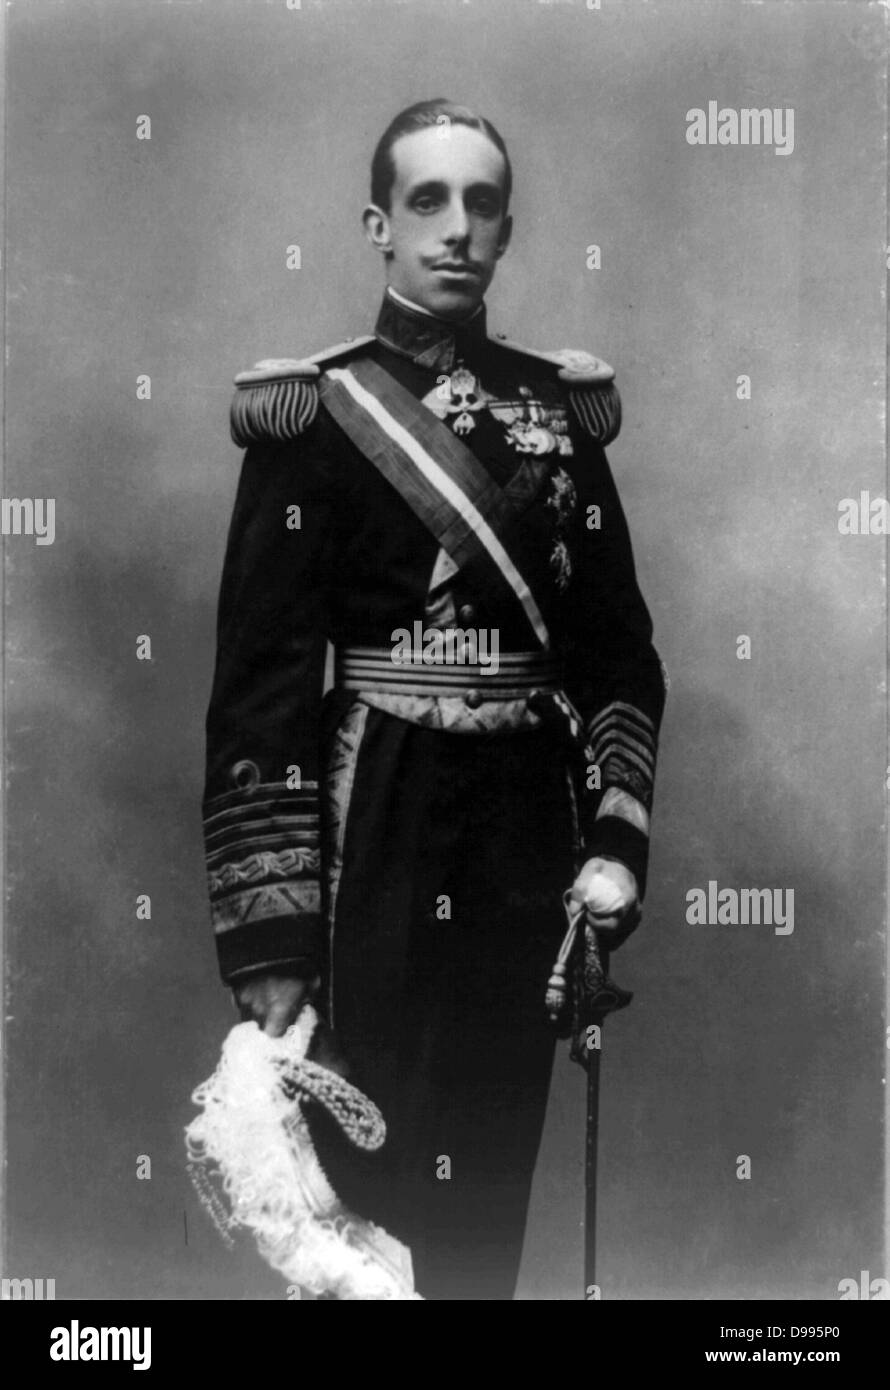 King Alfonso XIII of Spain, 1913 Oct. 13. - Stock Image